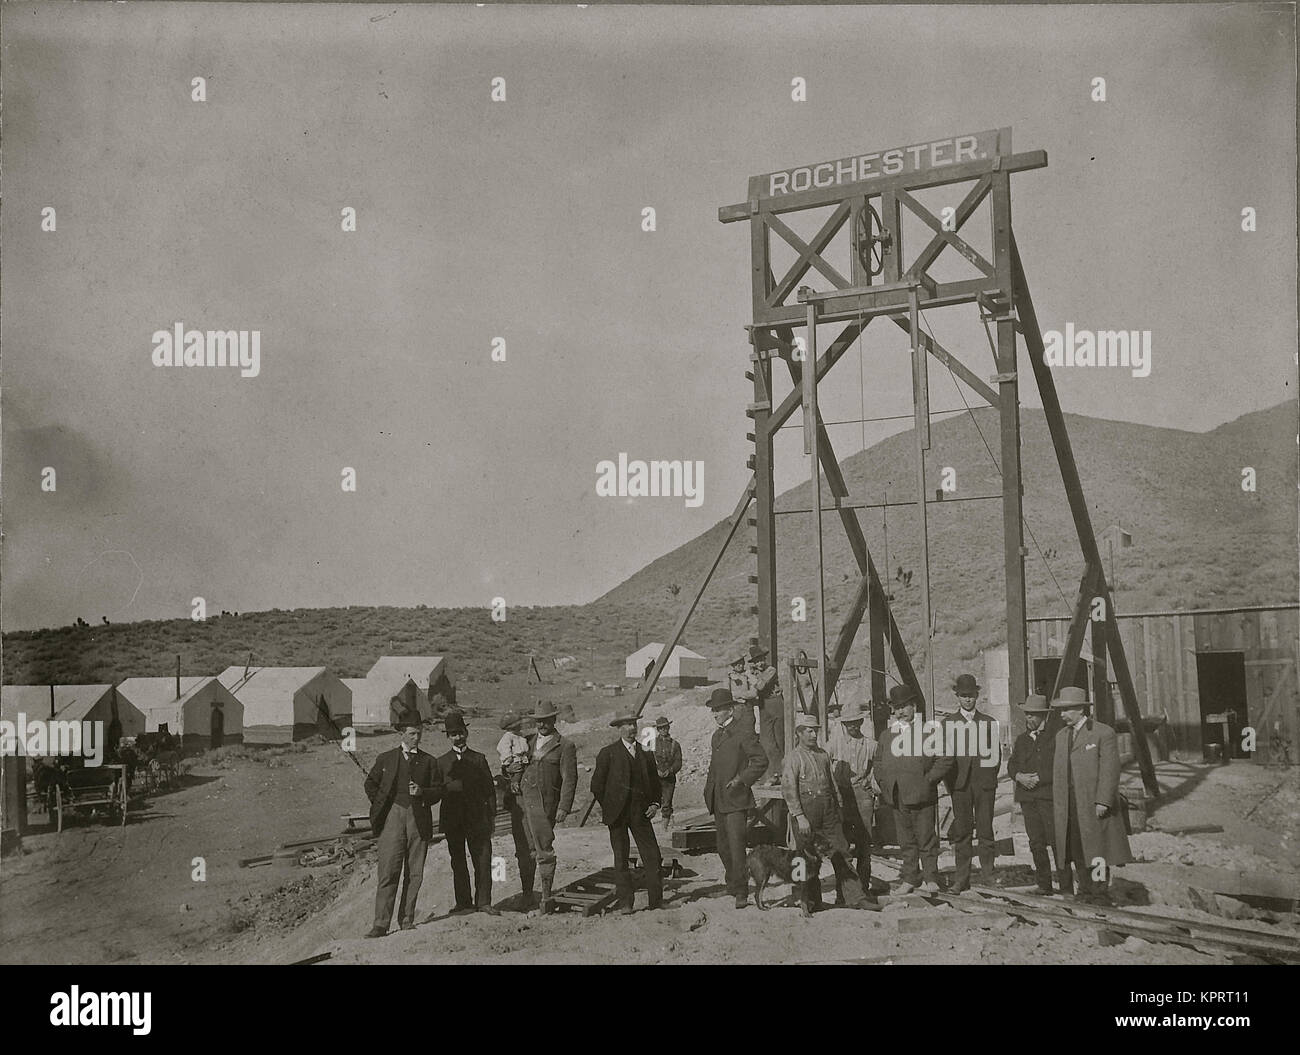 Goldfield Dignitaries  At Rochester Gallows Frame For Mining Venture. - Stock Image